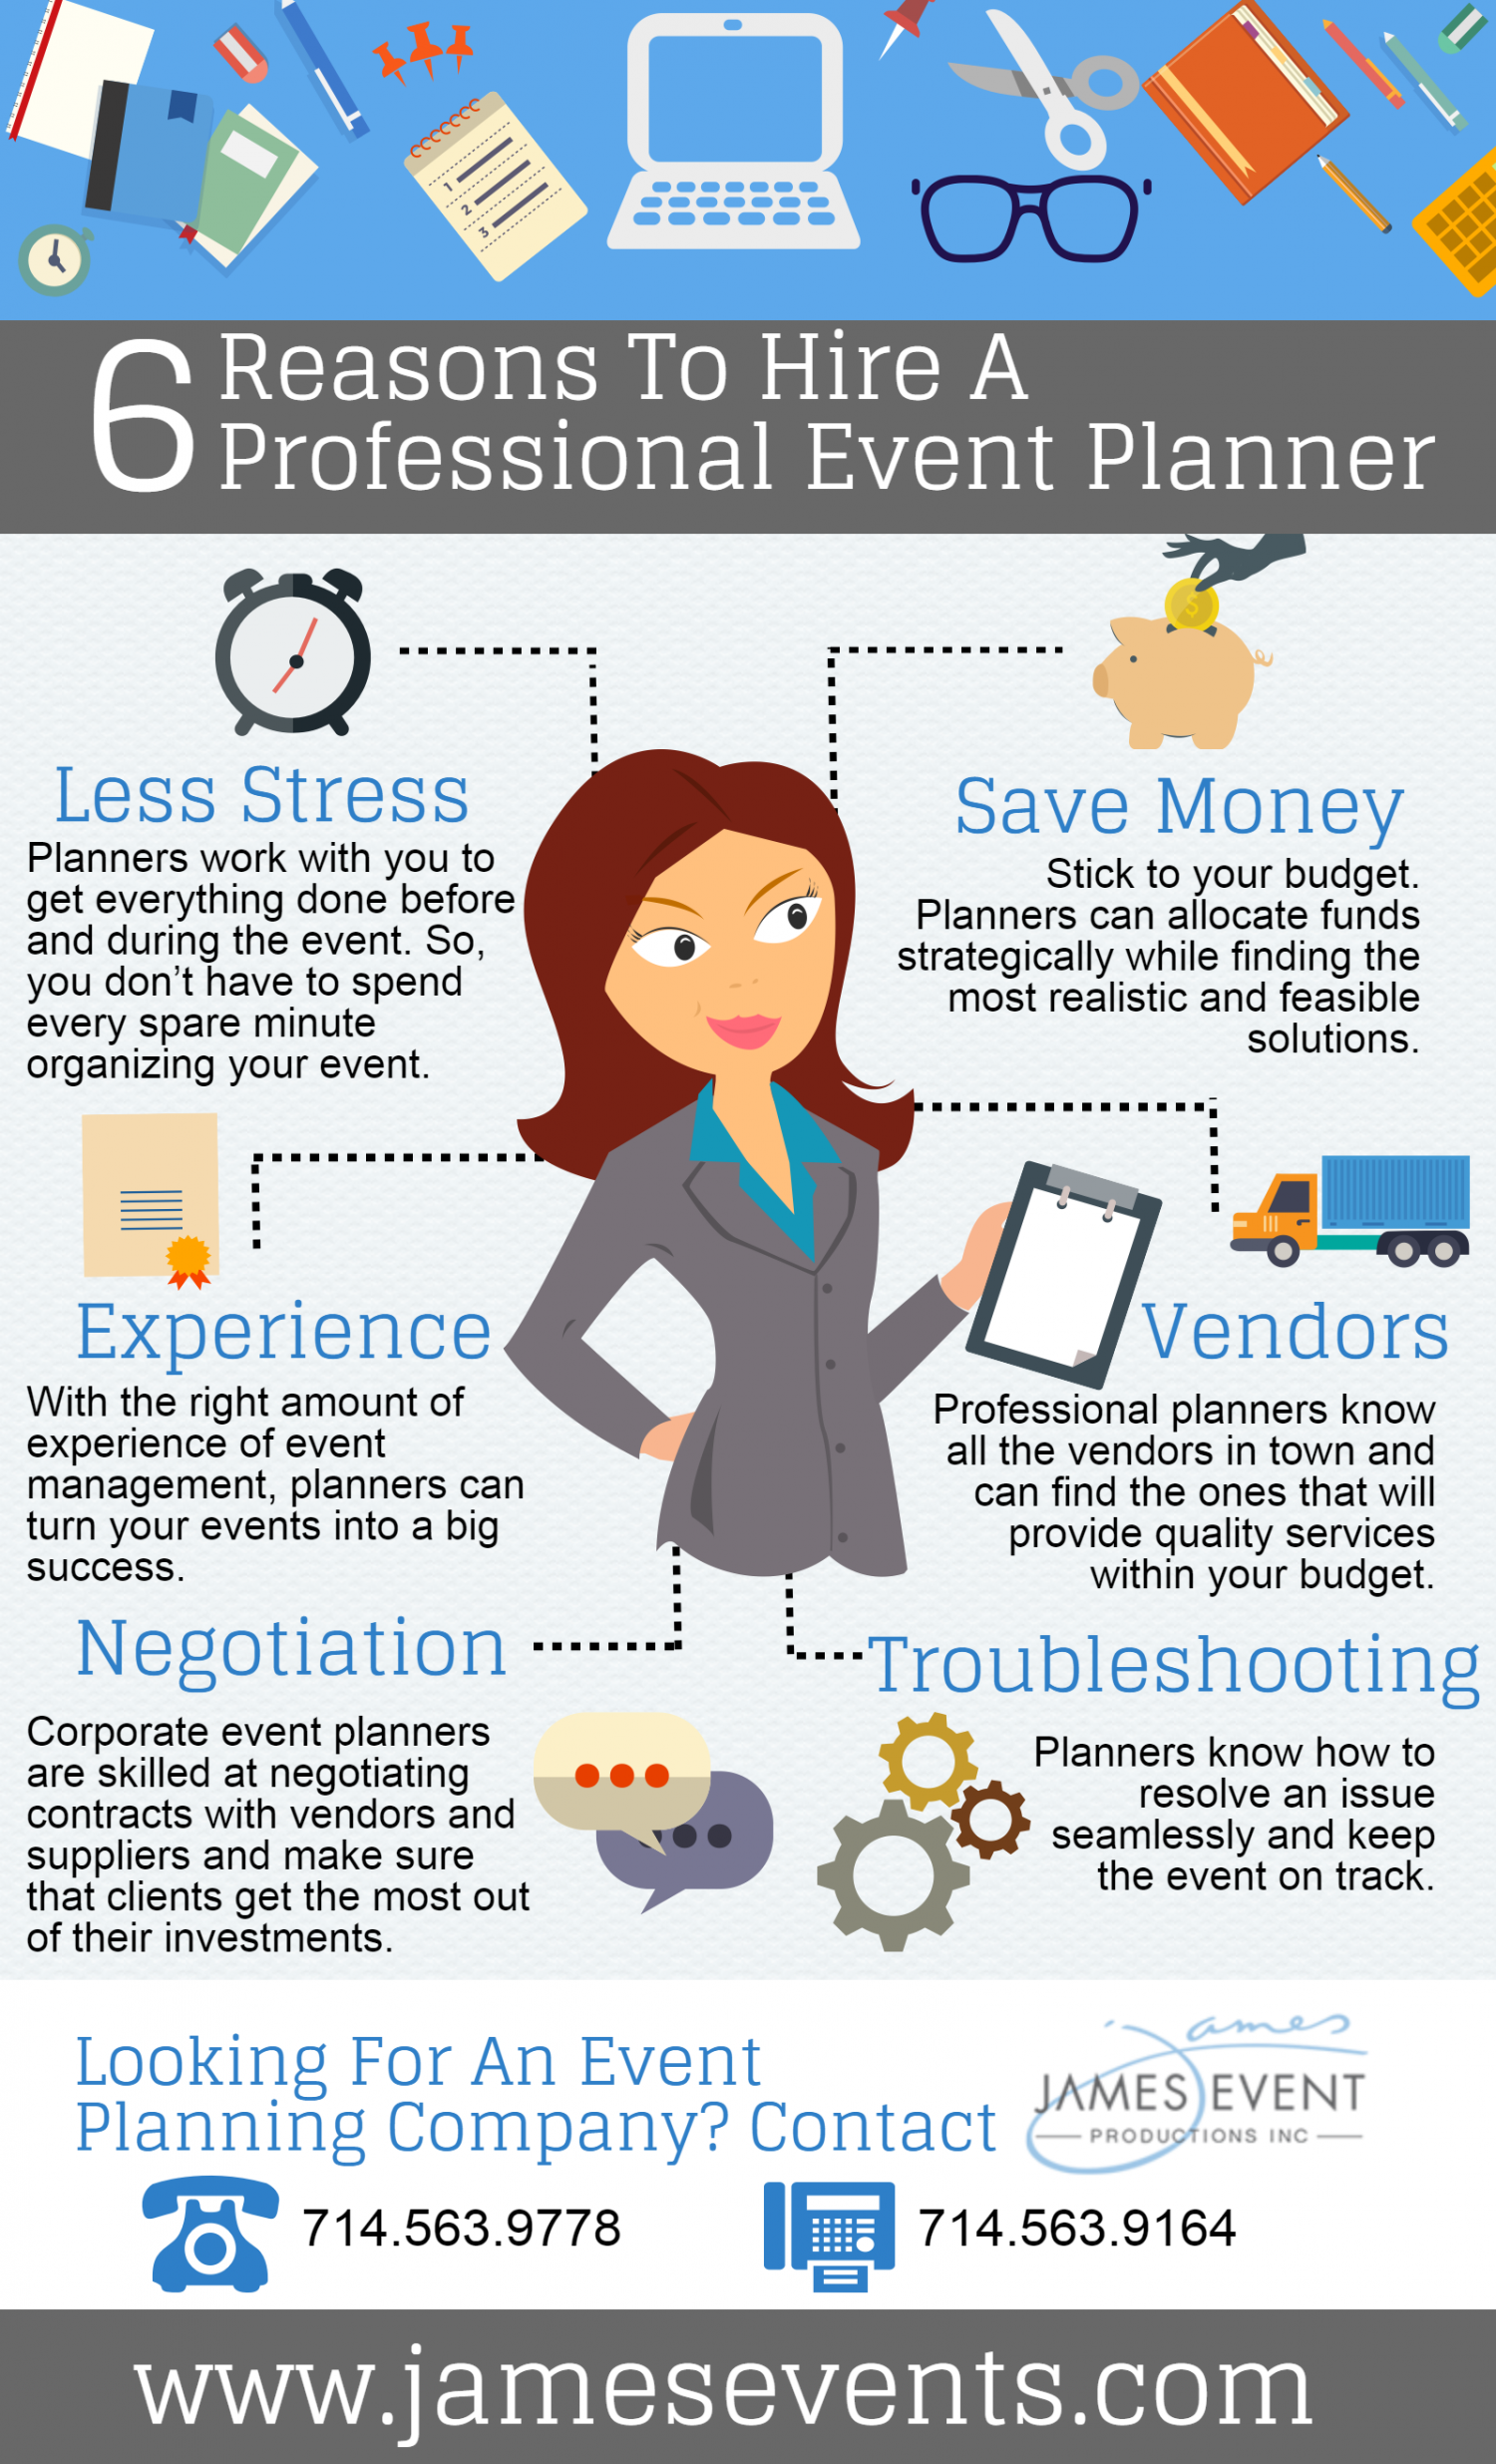 6 Reasons To Hire A Professional Event Planner Infographic